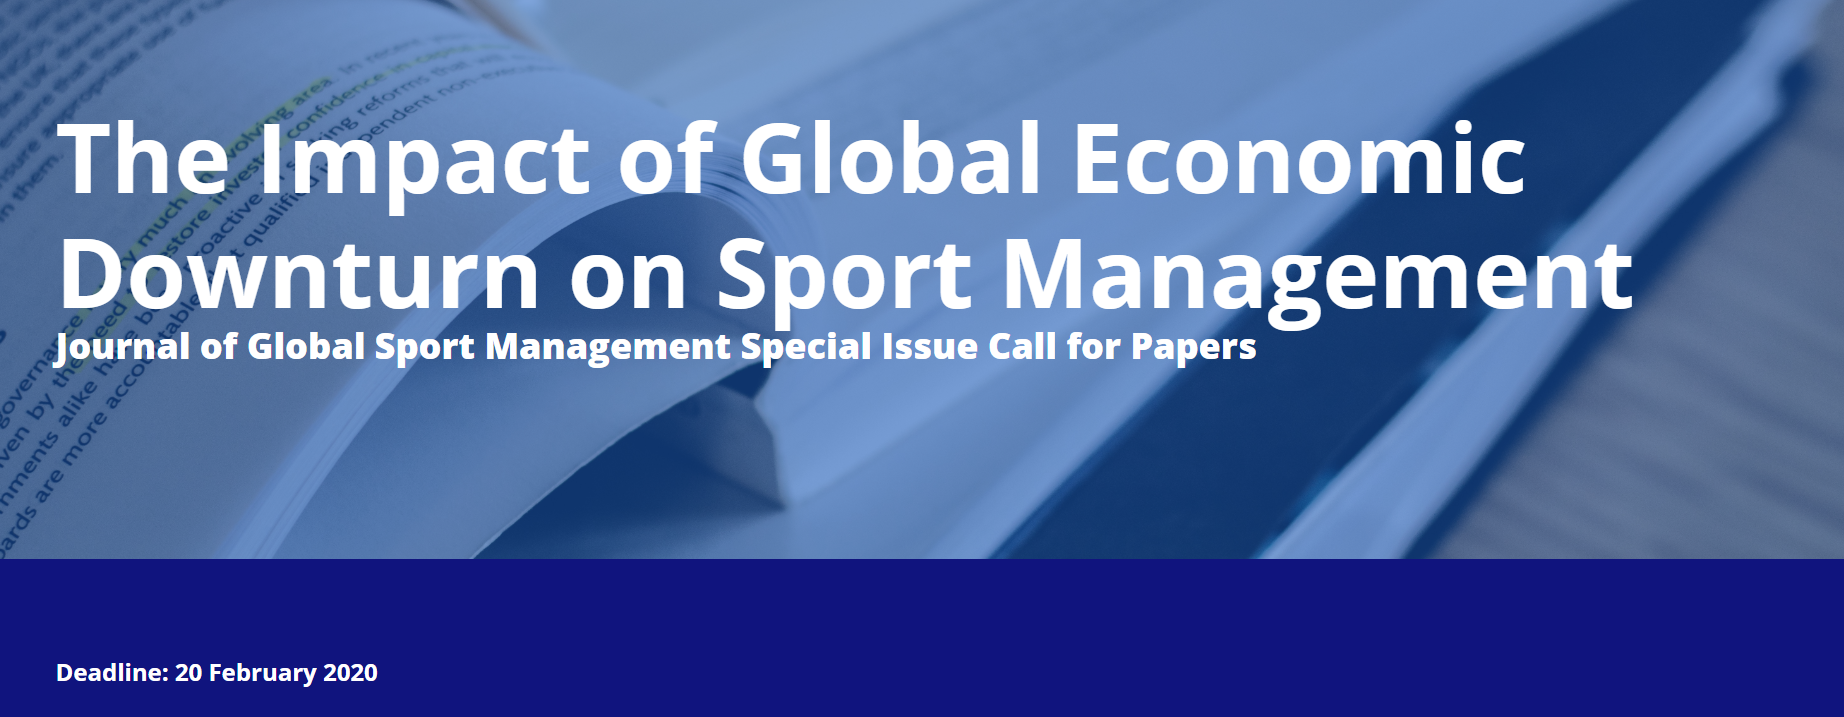 The Impact of Global Economic Downturn on Sport Management Journal